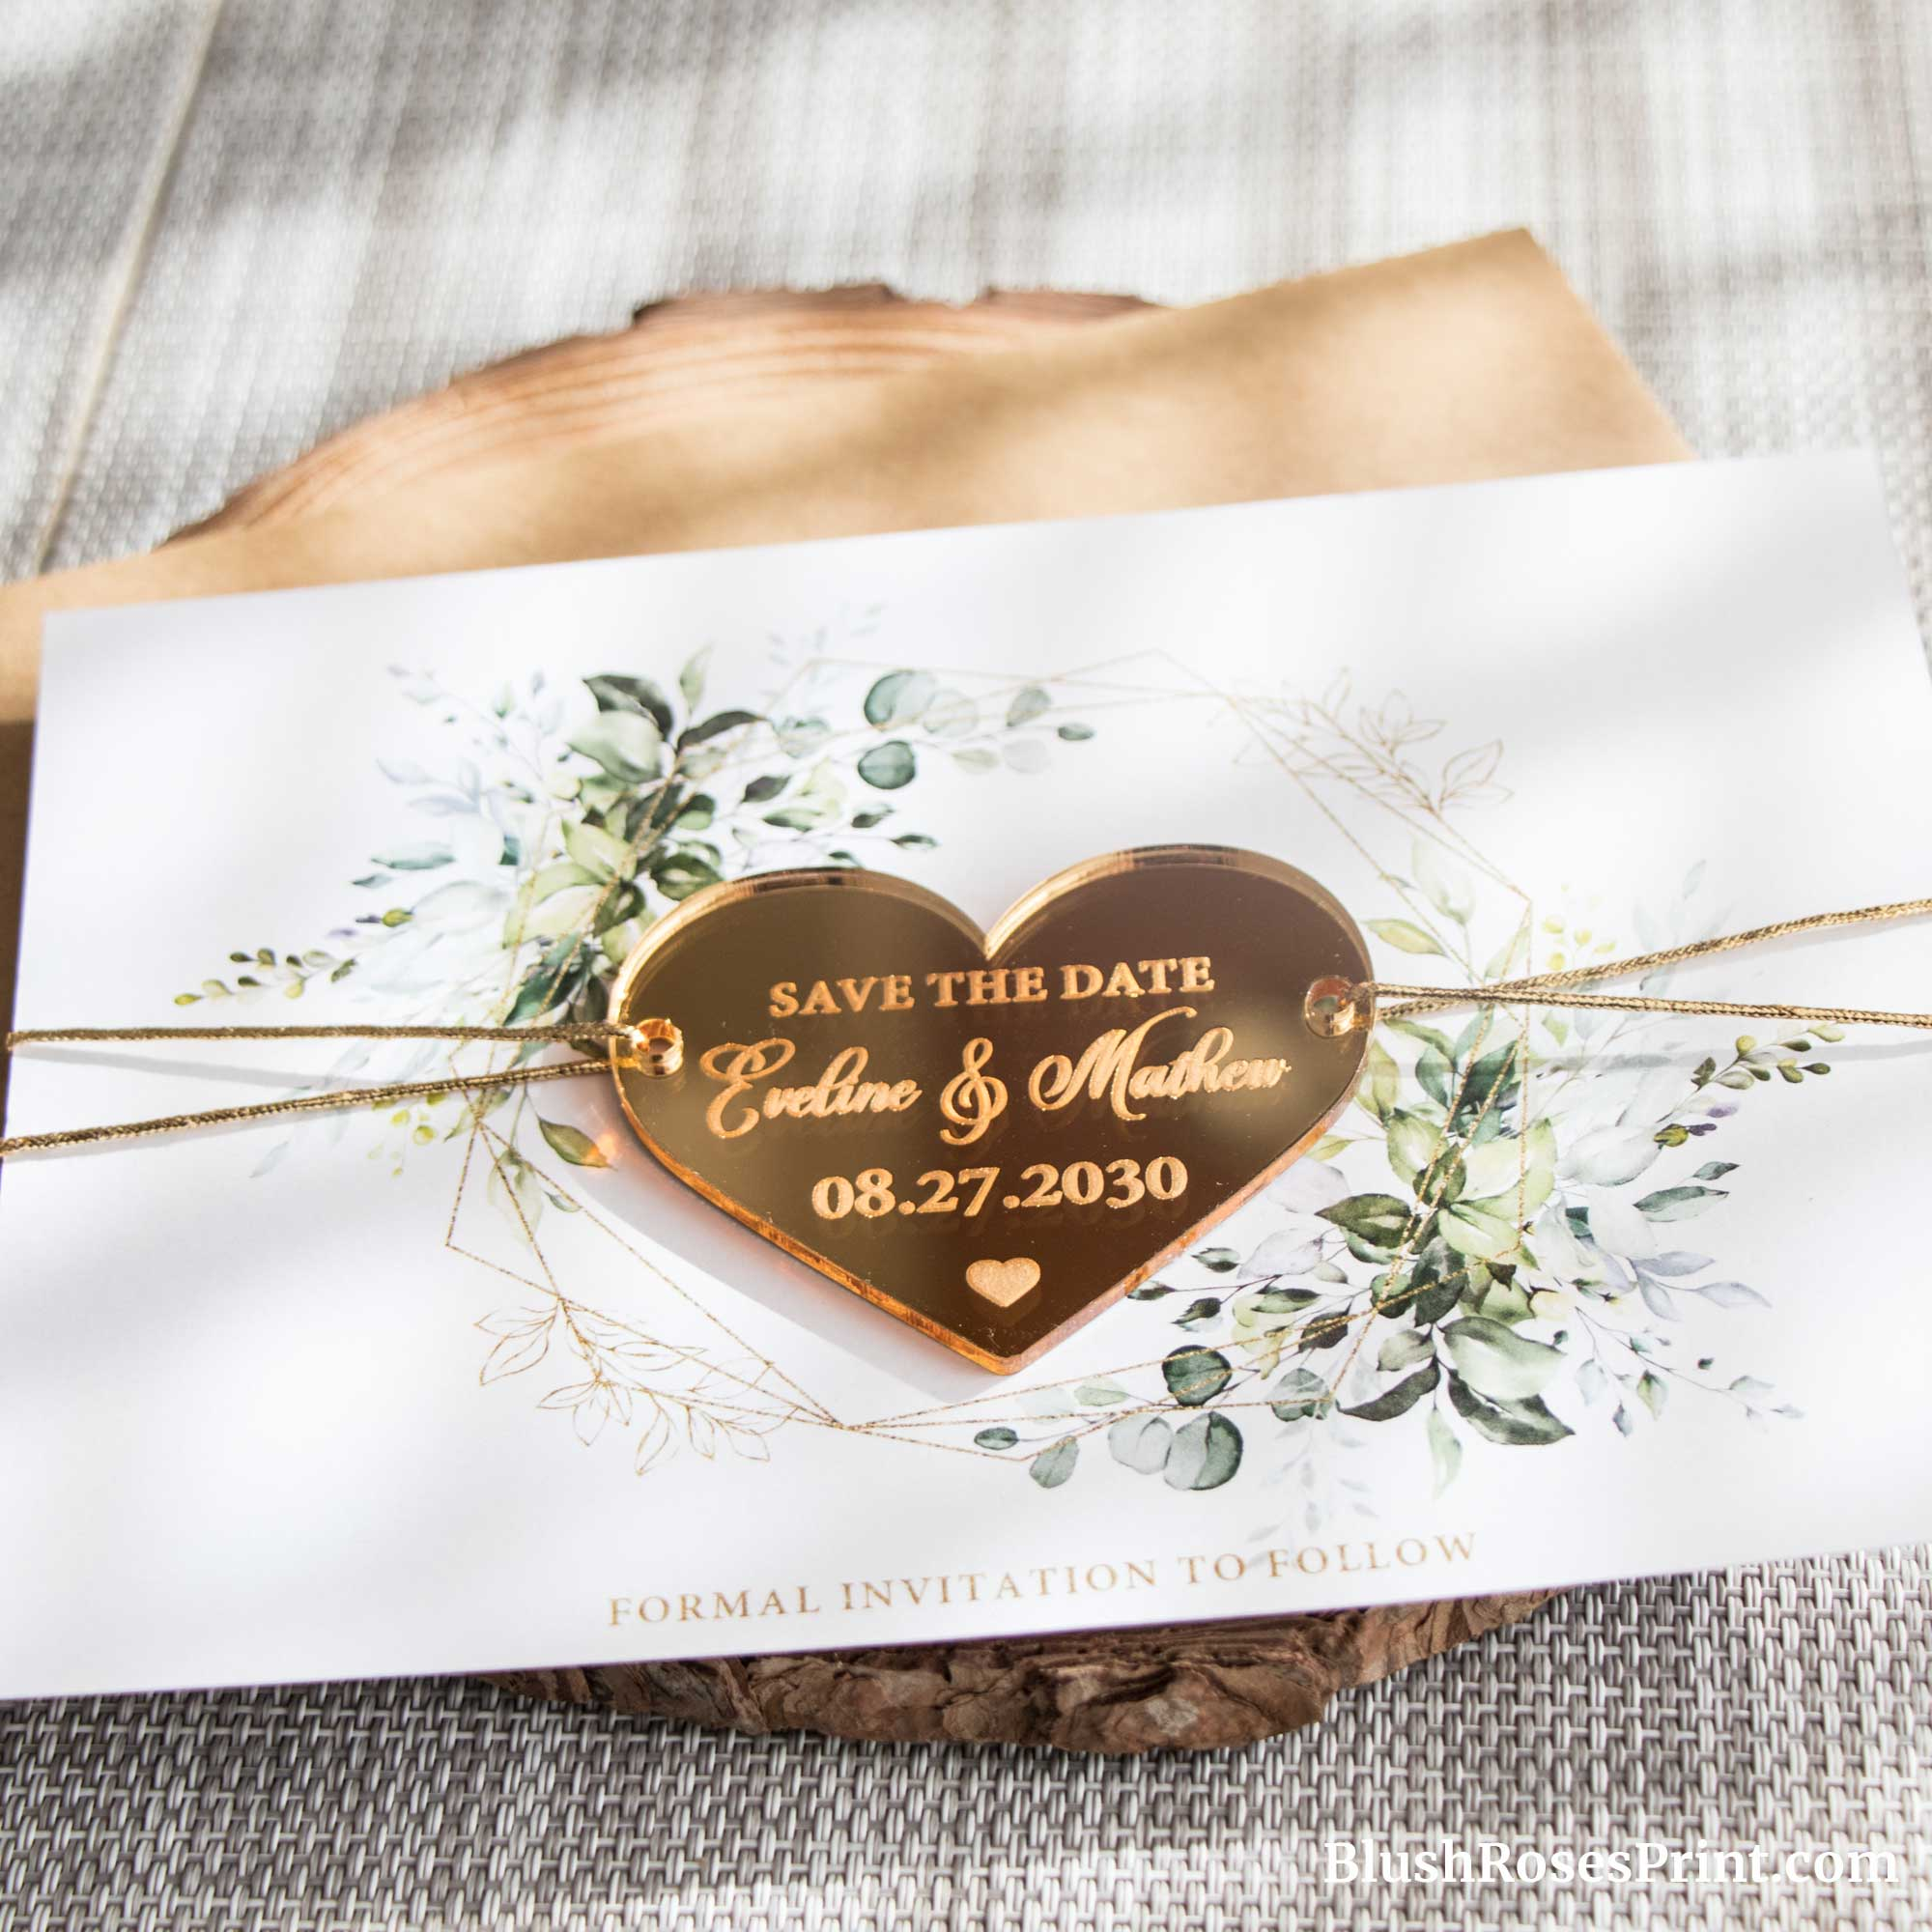 ROMENA - Gold Mirror Heart Magnet Save the Date Cards, Greenery Foliage Boho Save the Date, Gold Mirror Magnet, Custom Plexi Mirror Heart Magnet